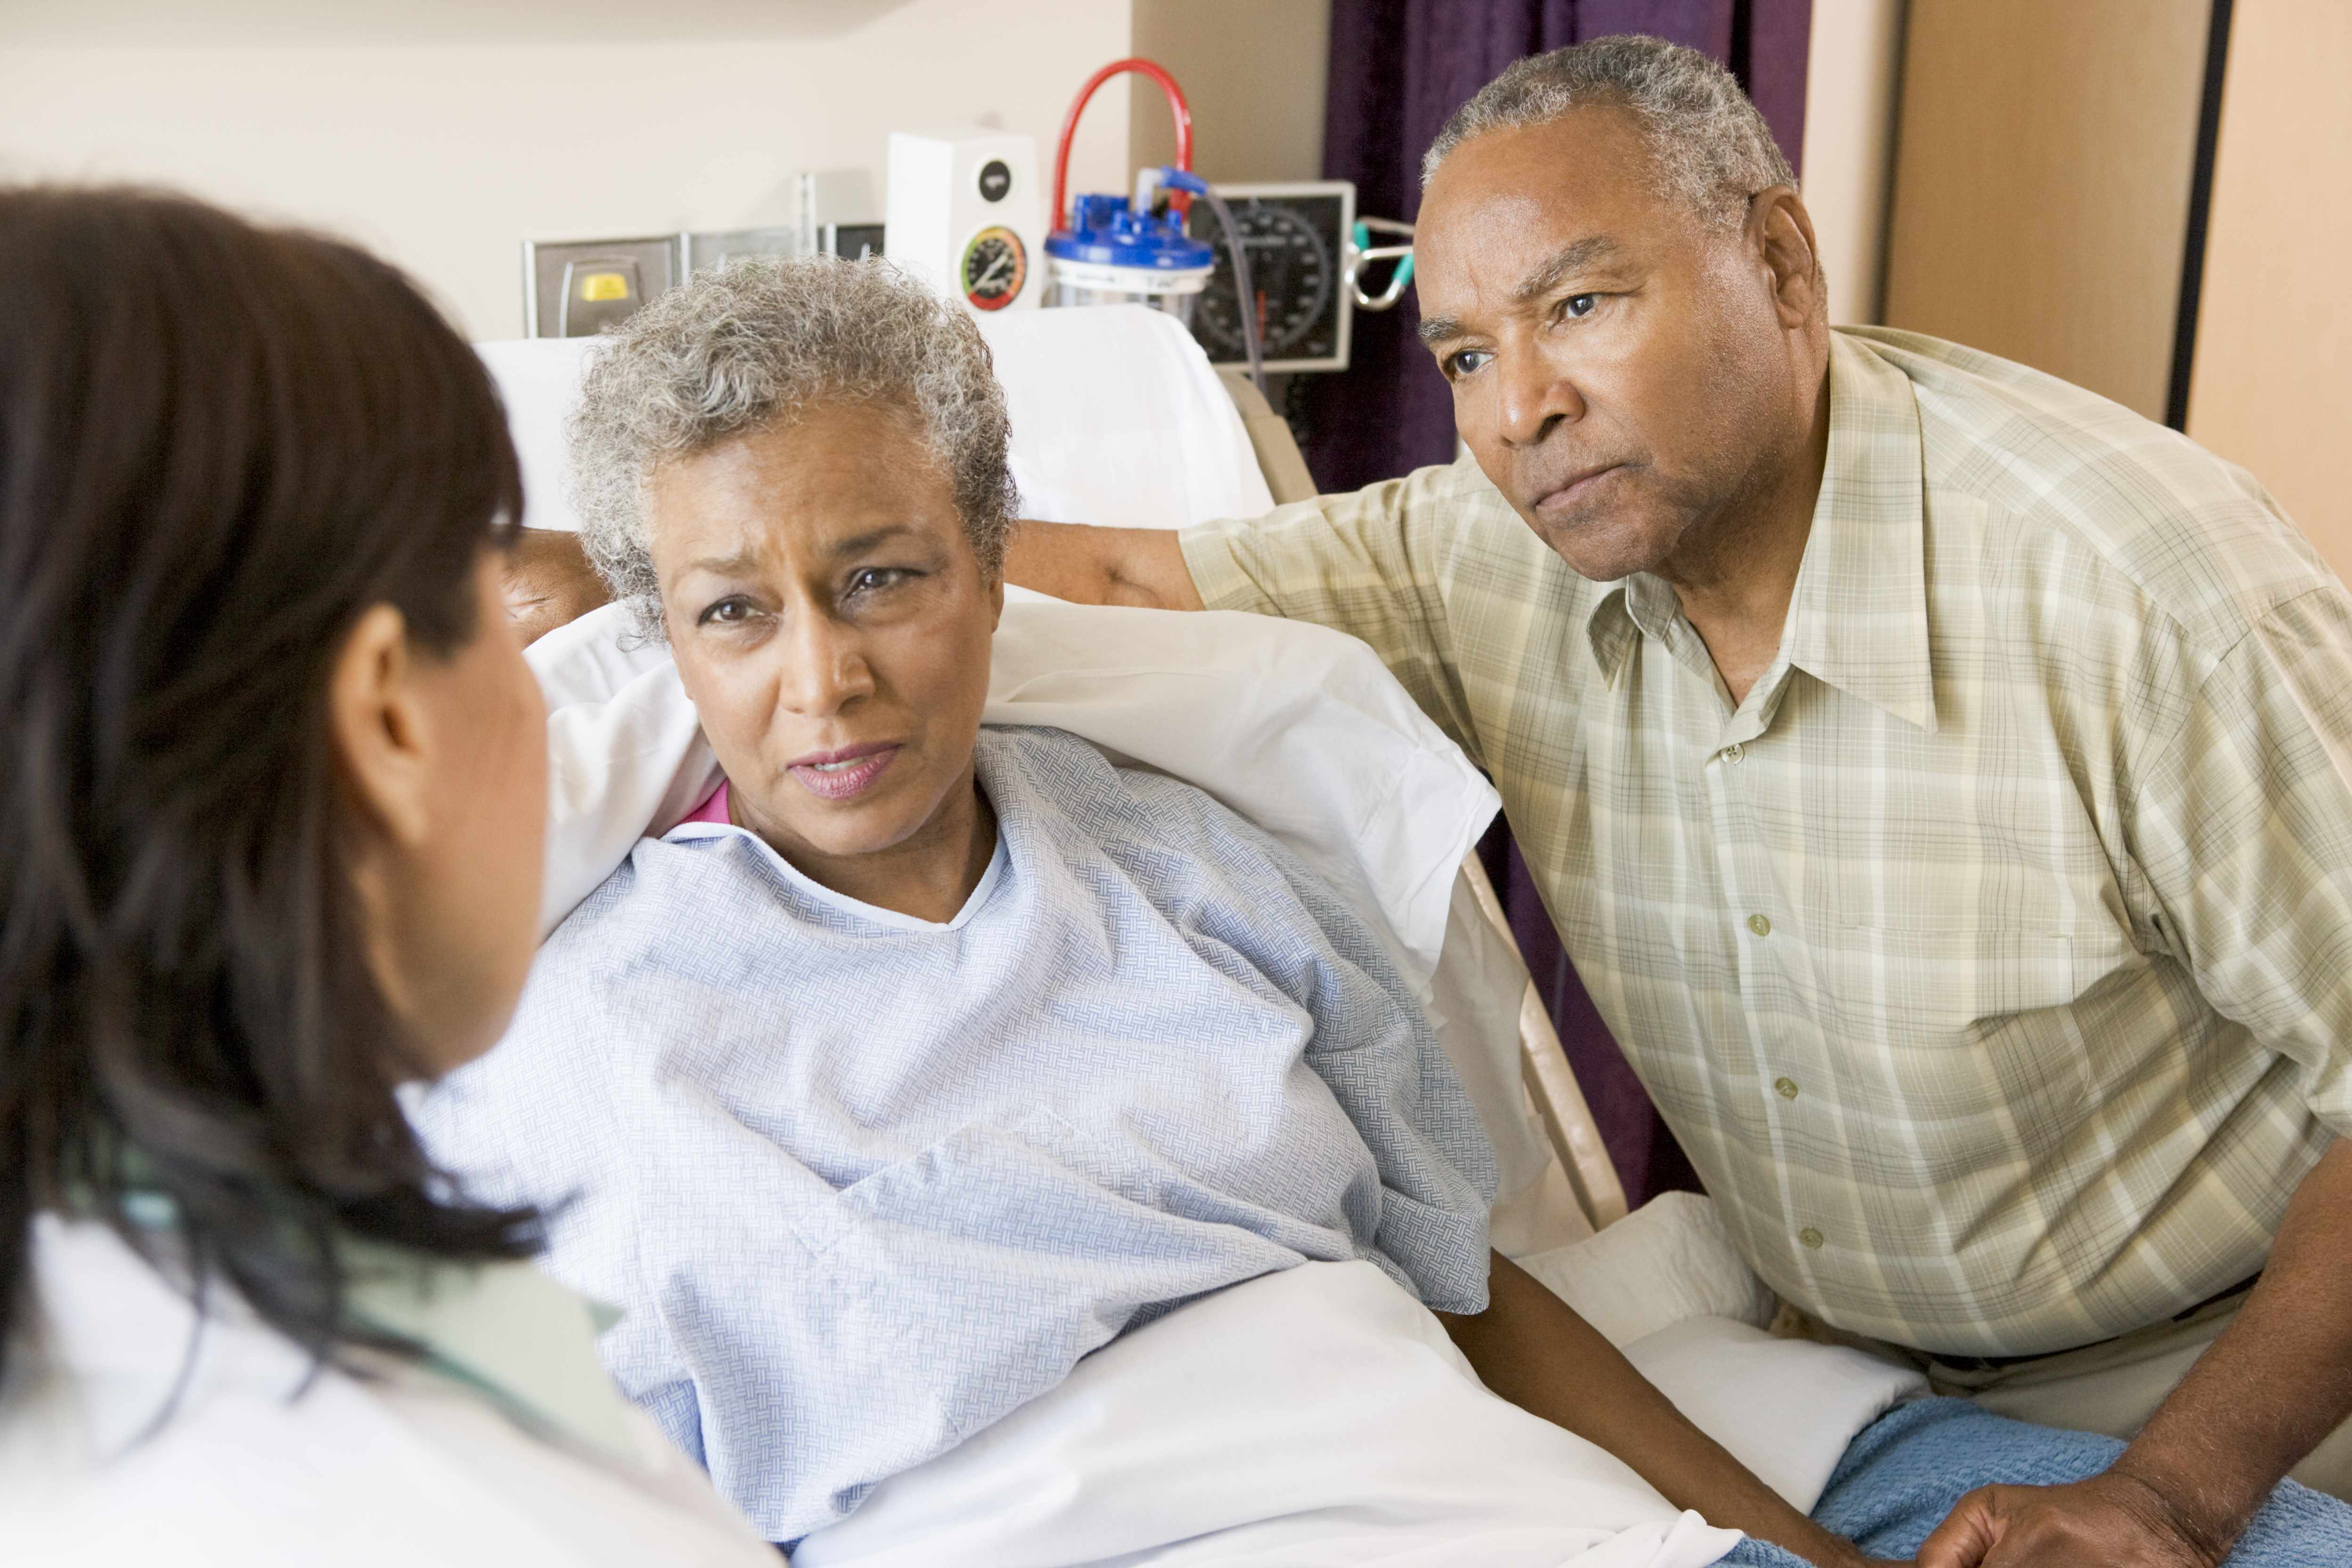 African-American woman in hospital bed listening to doctor